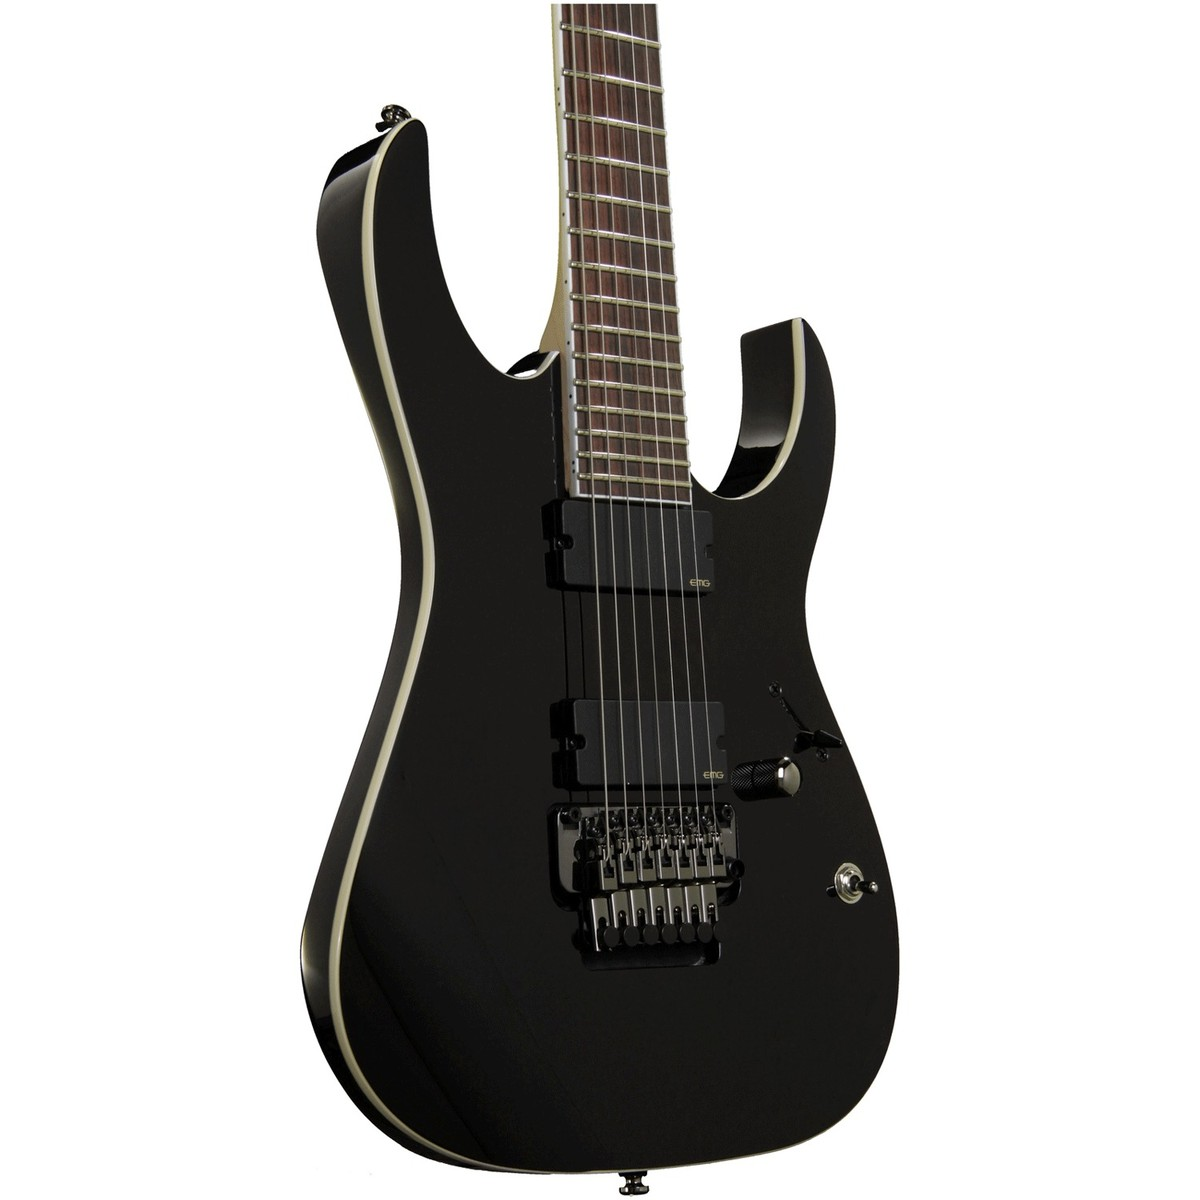 This is a picture of Witty Ibanez Iron Label Rgdix6